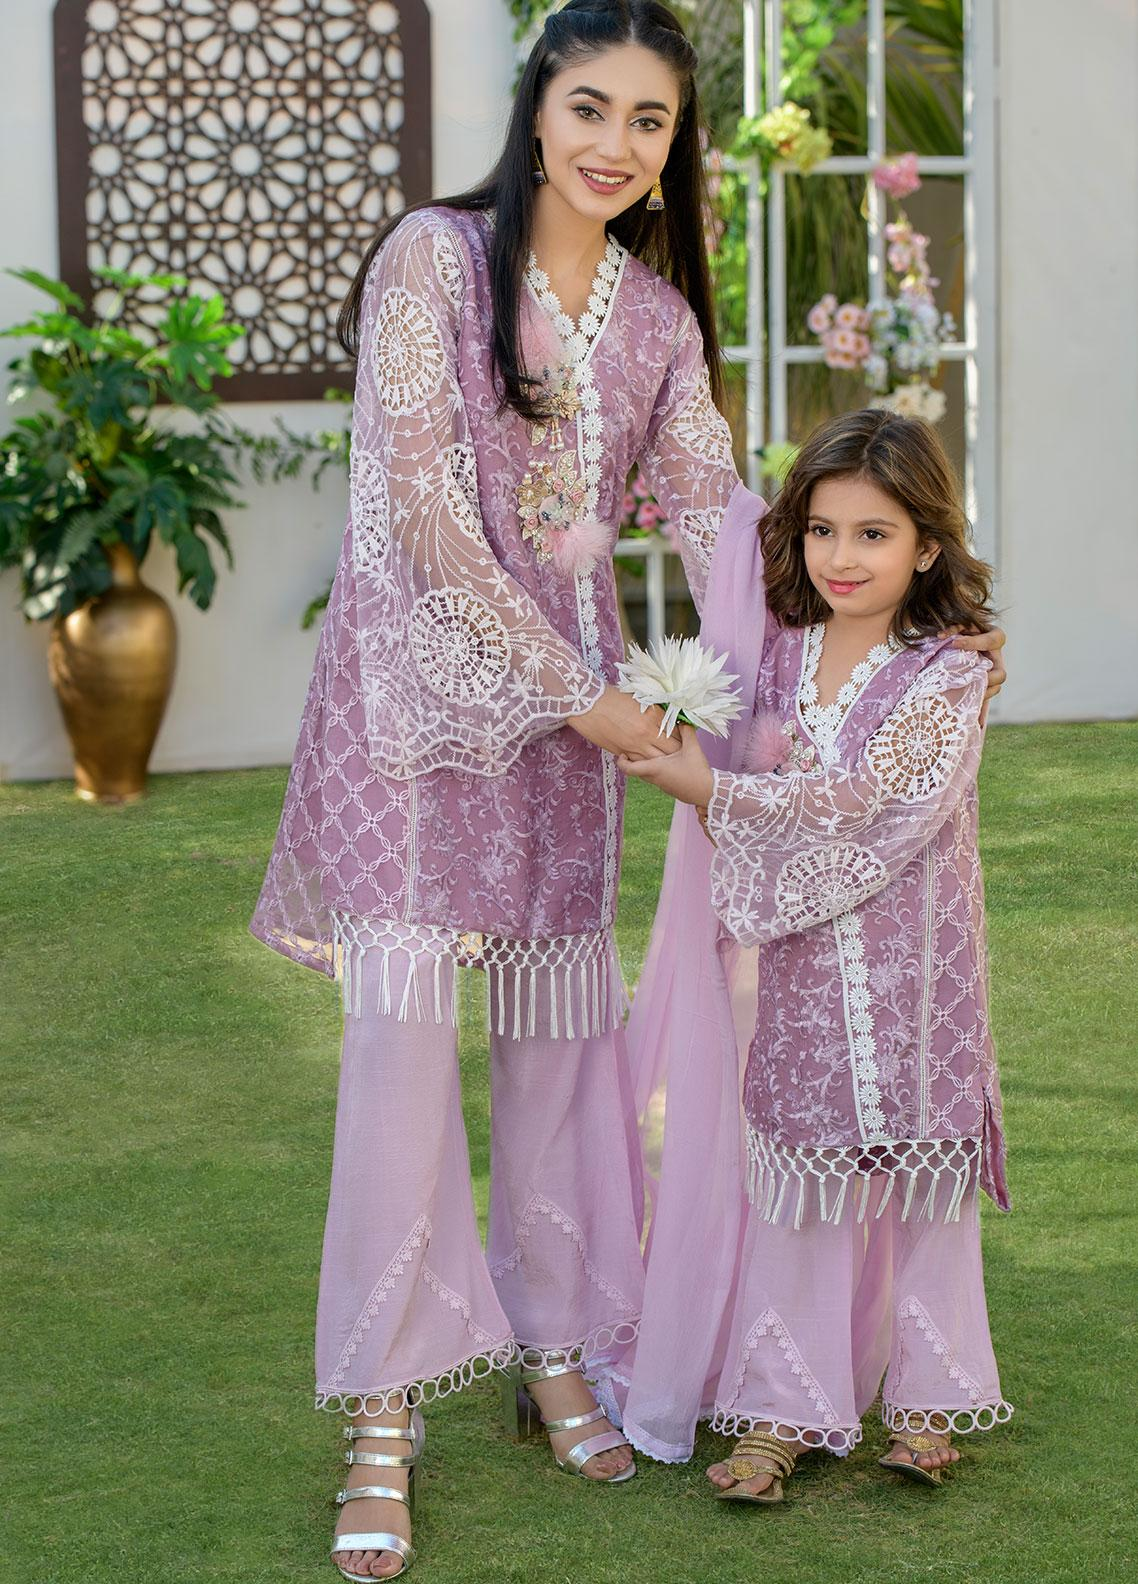 Chic Ophicial Organza Formal 2 Piece Suit for Girls -  CH04 Jazmine